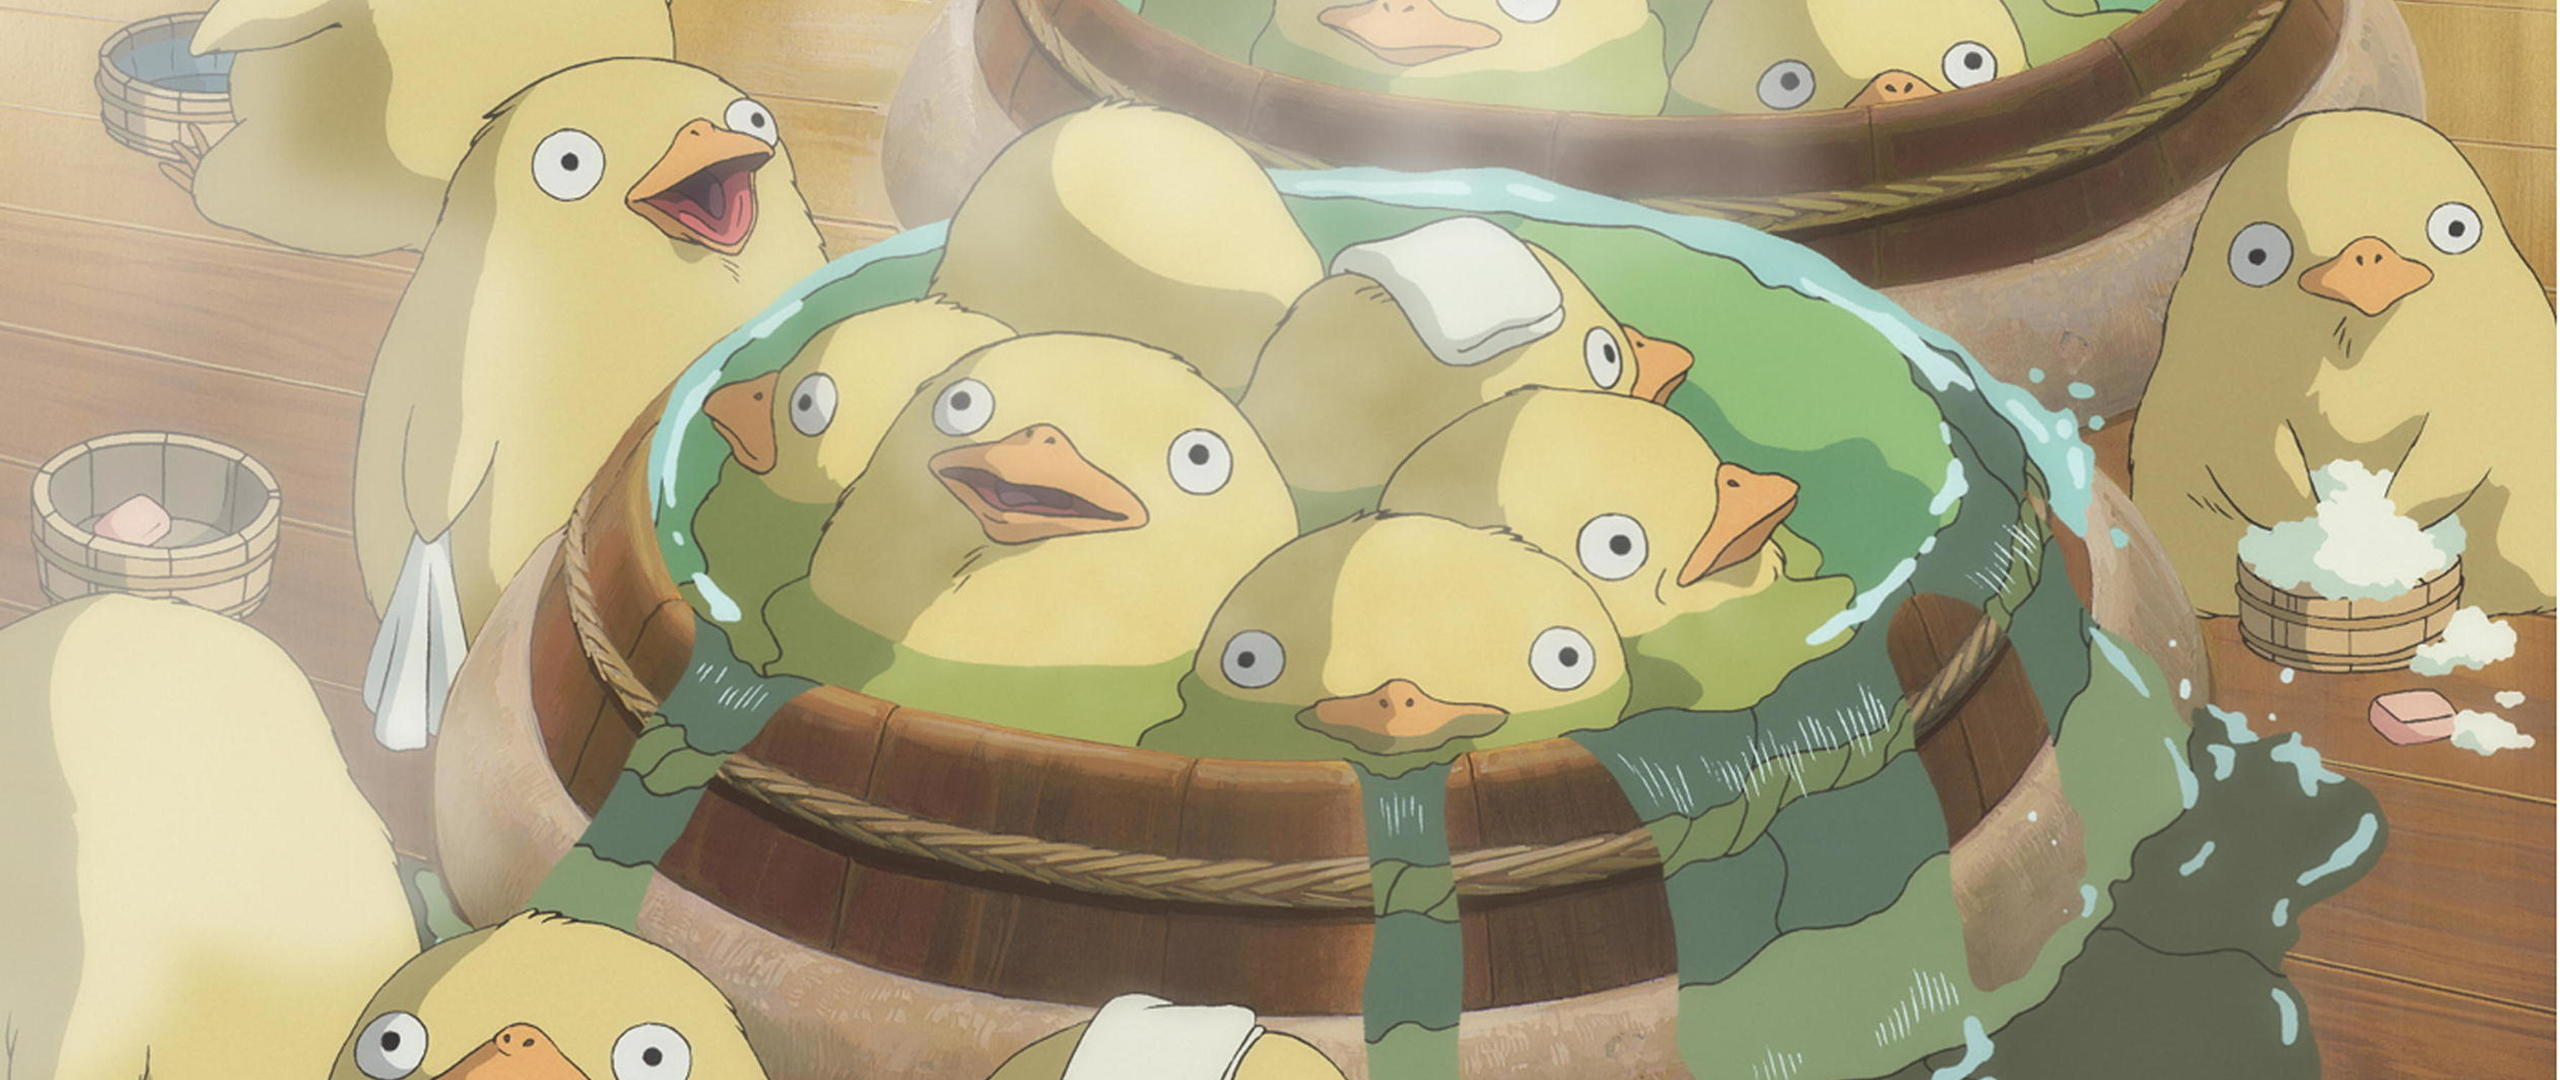 Duck Bath From Spirited Away 3555 X 1920 Wallpapers